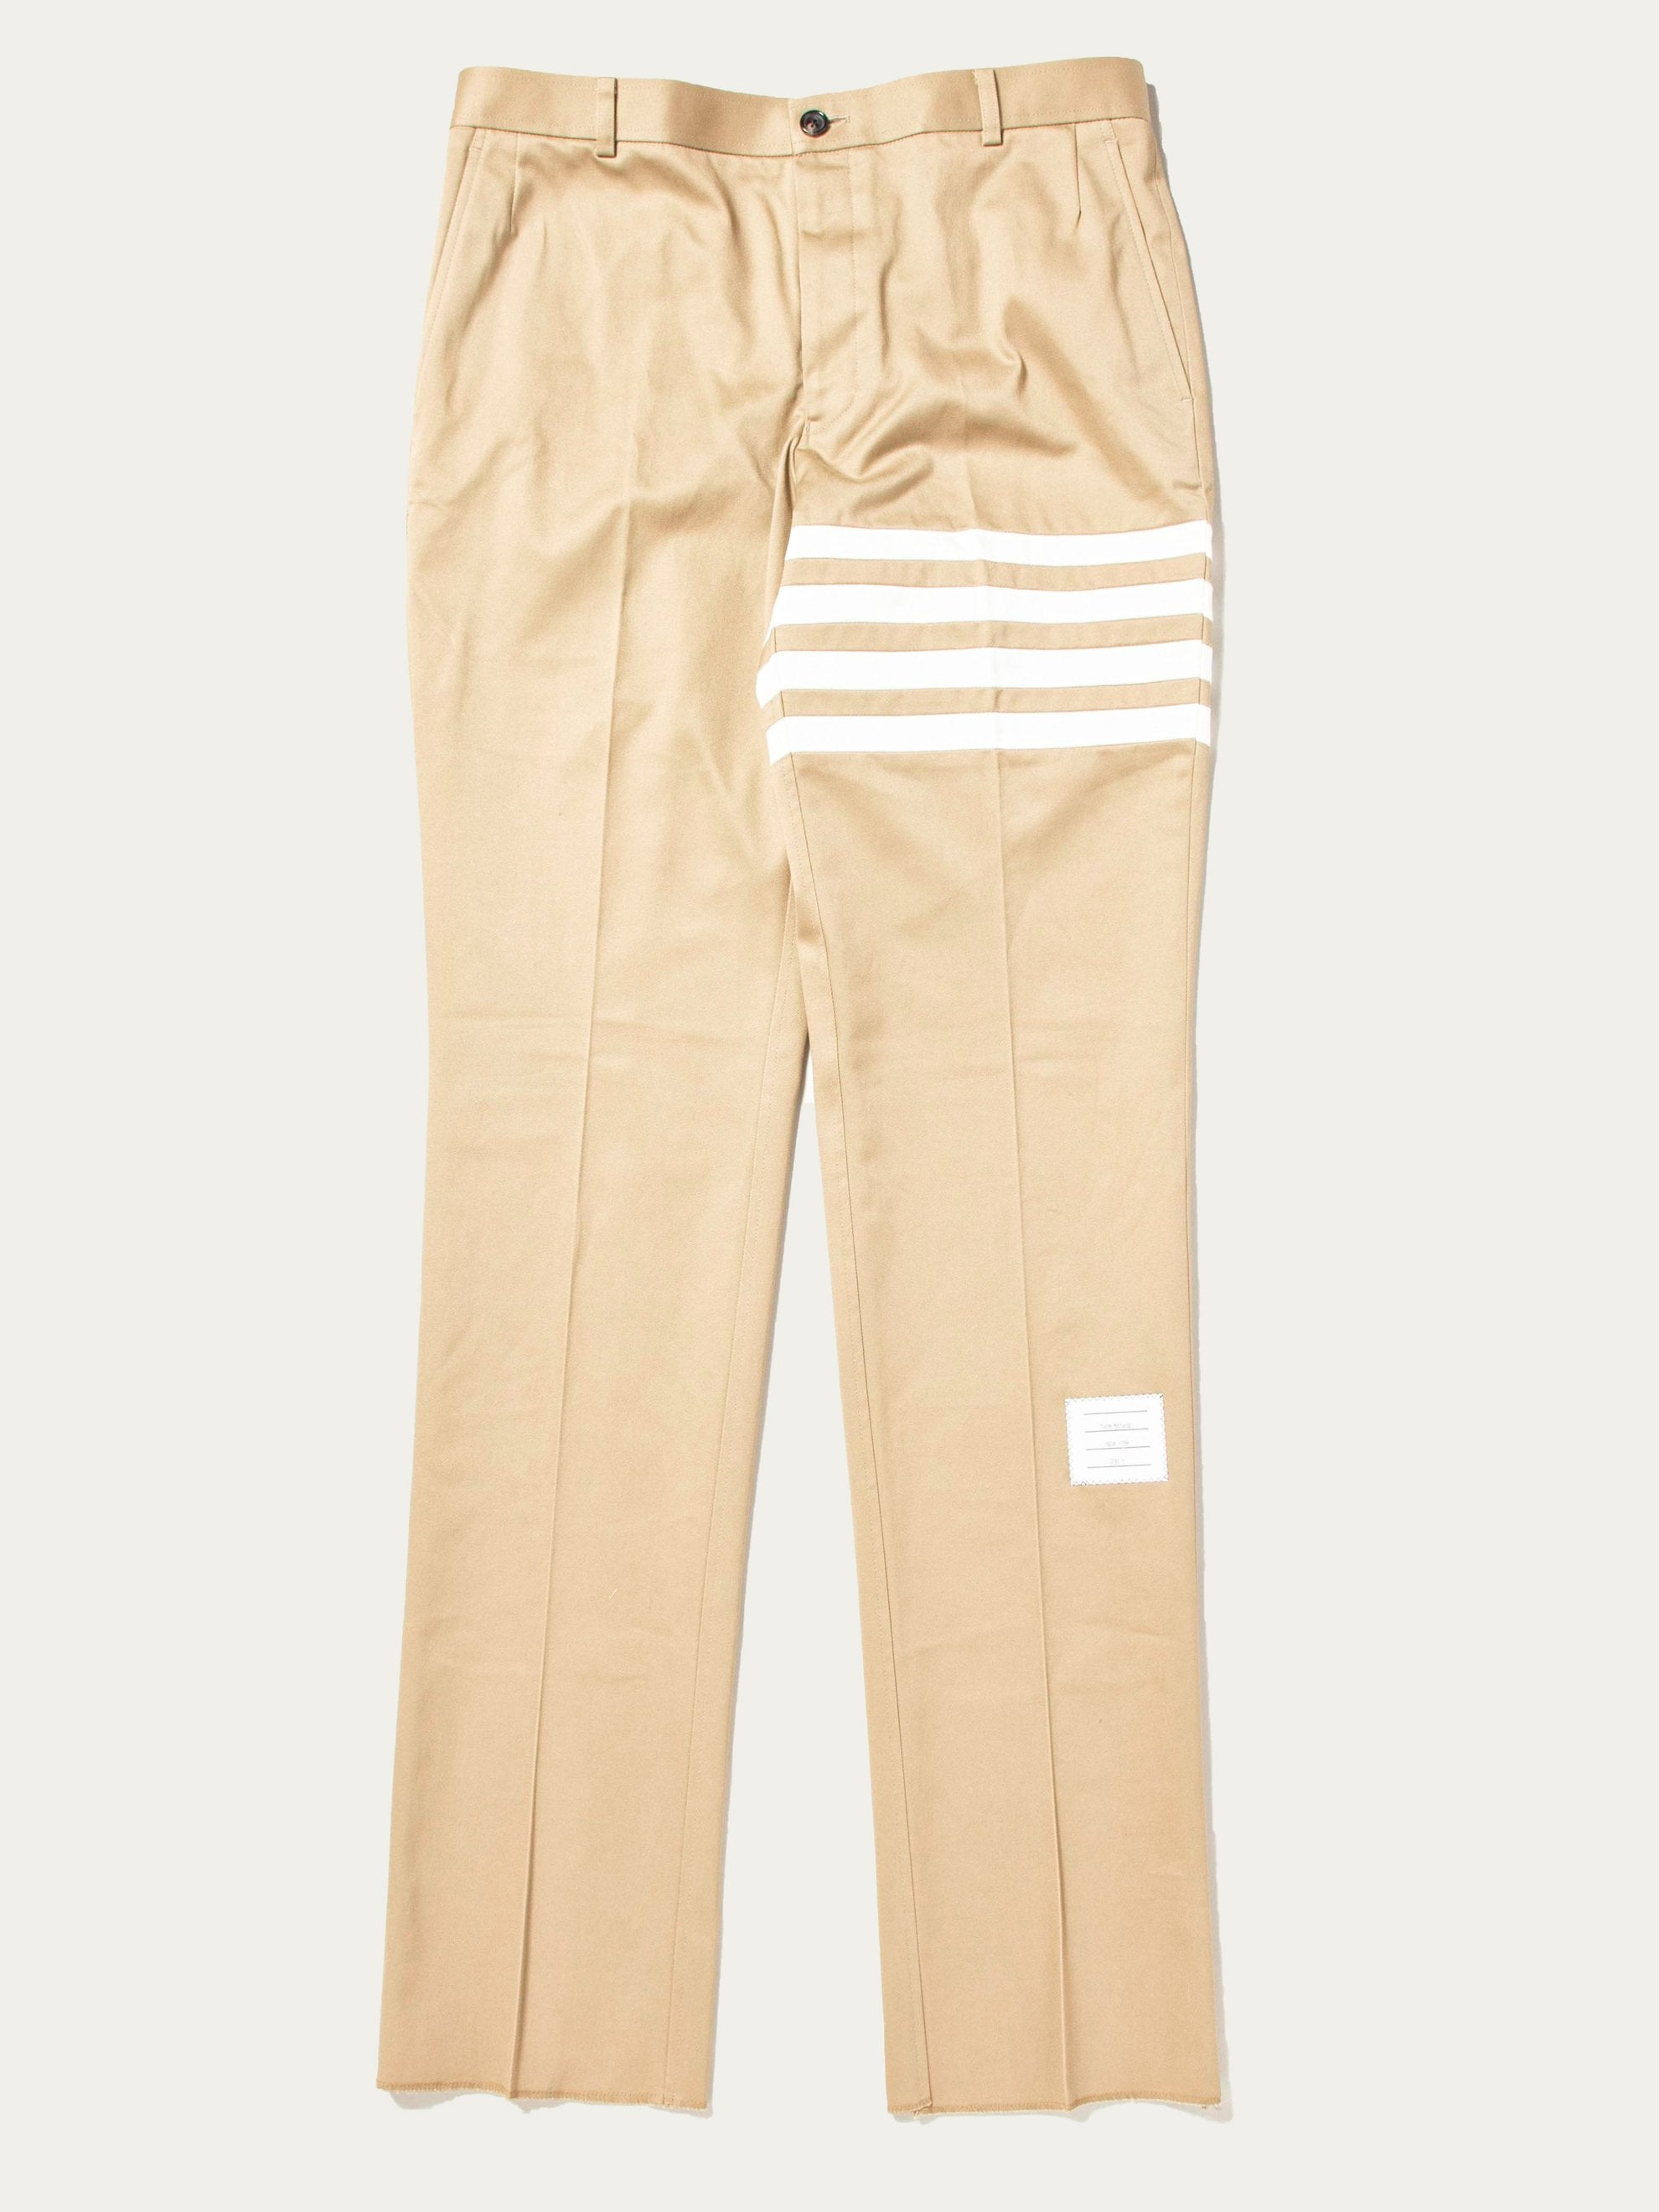 Camel Unconstructed Chino Trouser W/ Seamed In 4 Bar Stripe In Cotton Twill 1